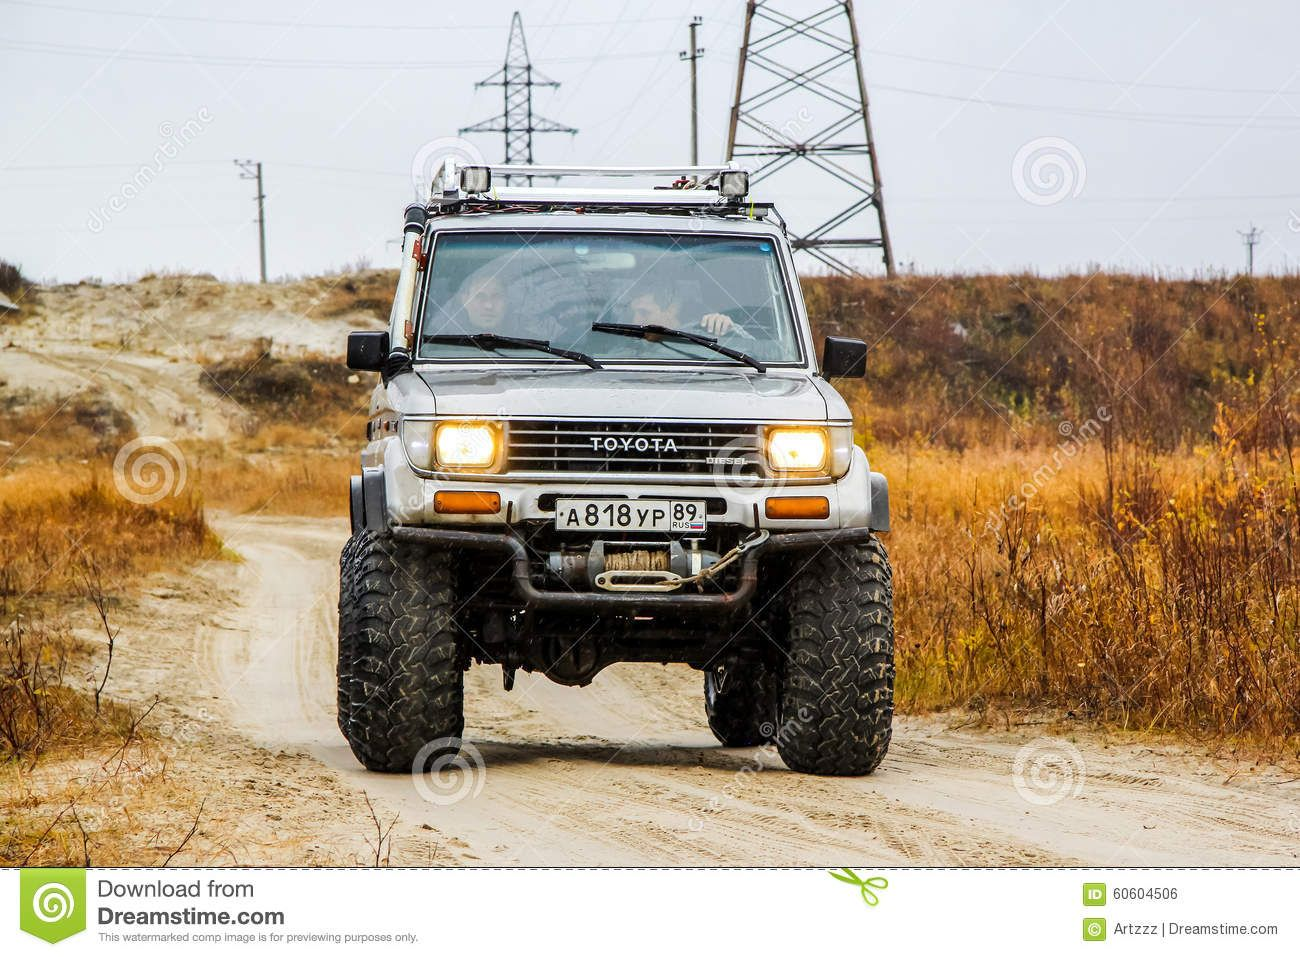 Toyota land cruiser off road extreme